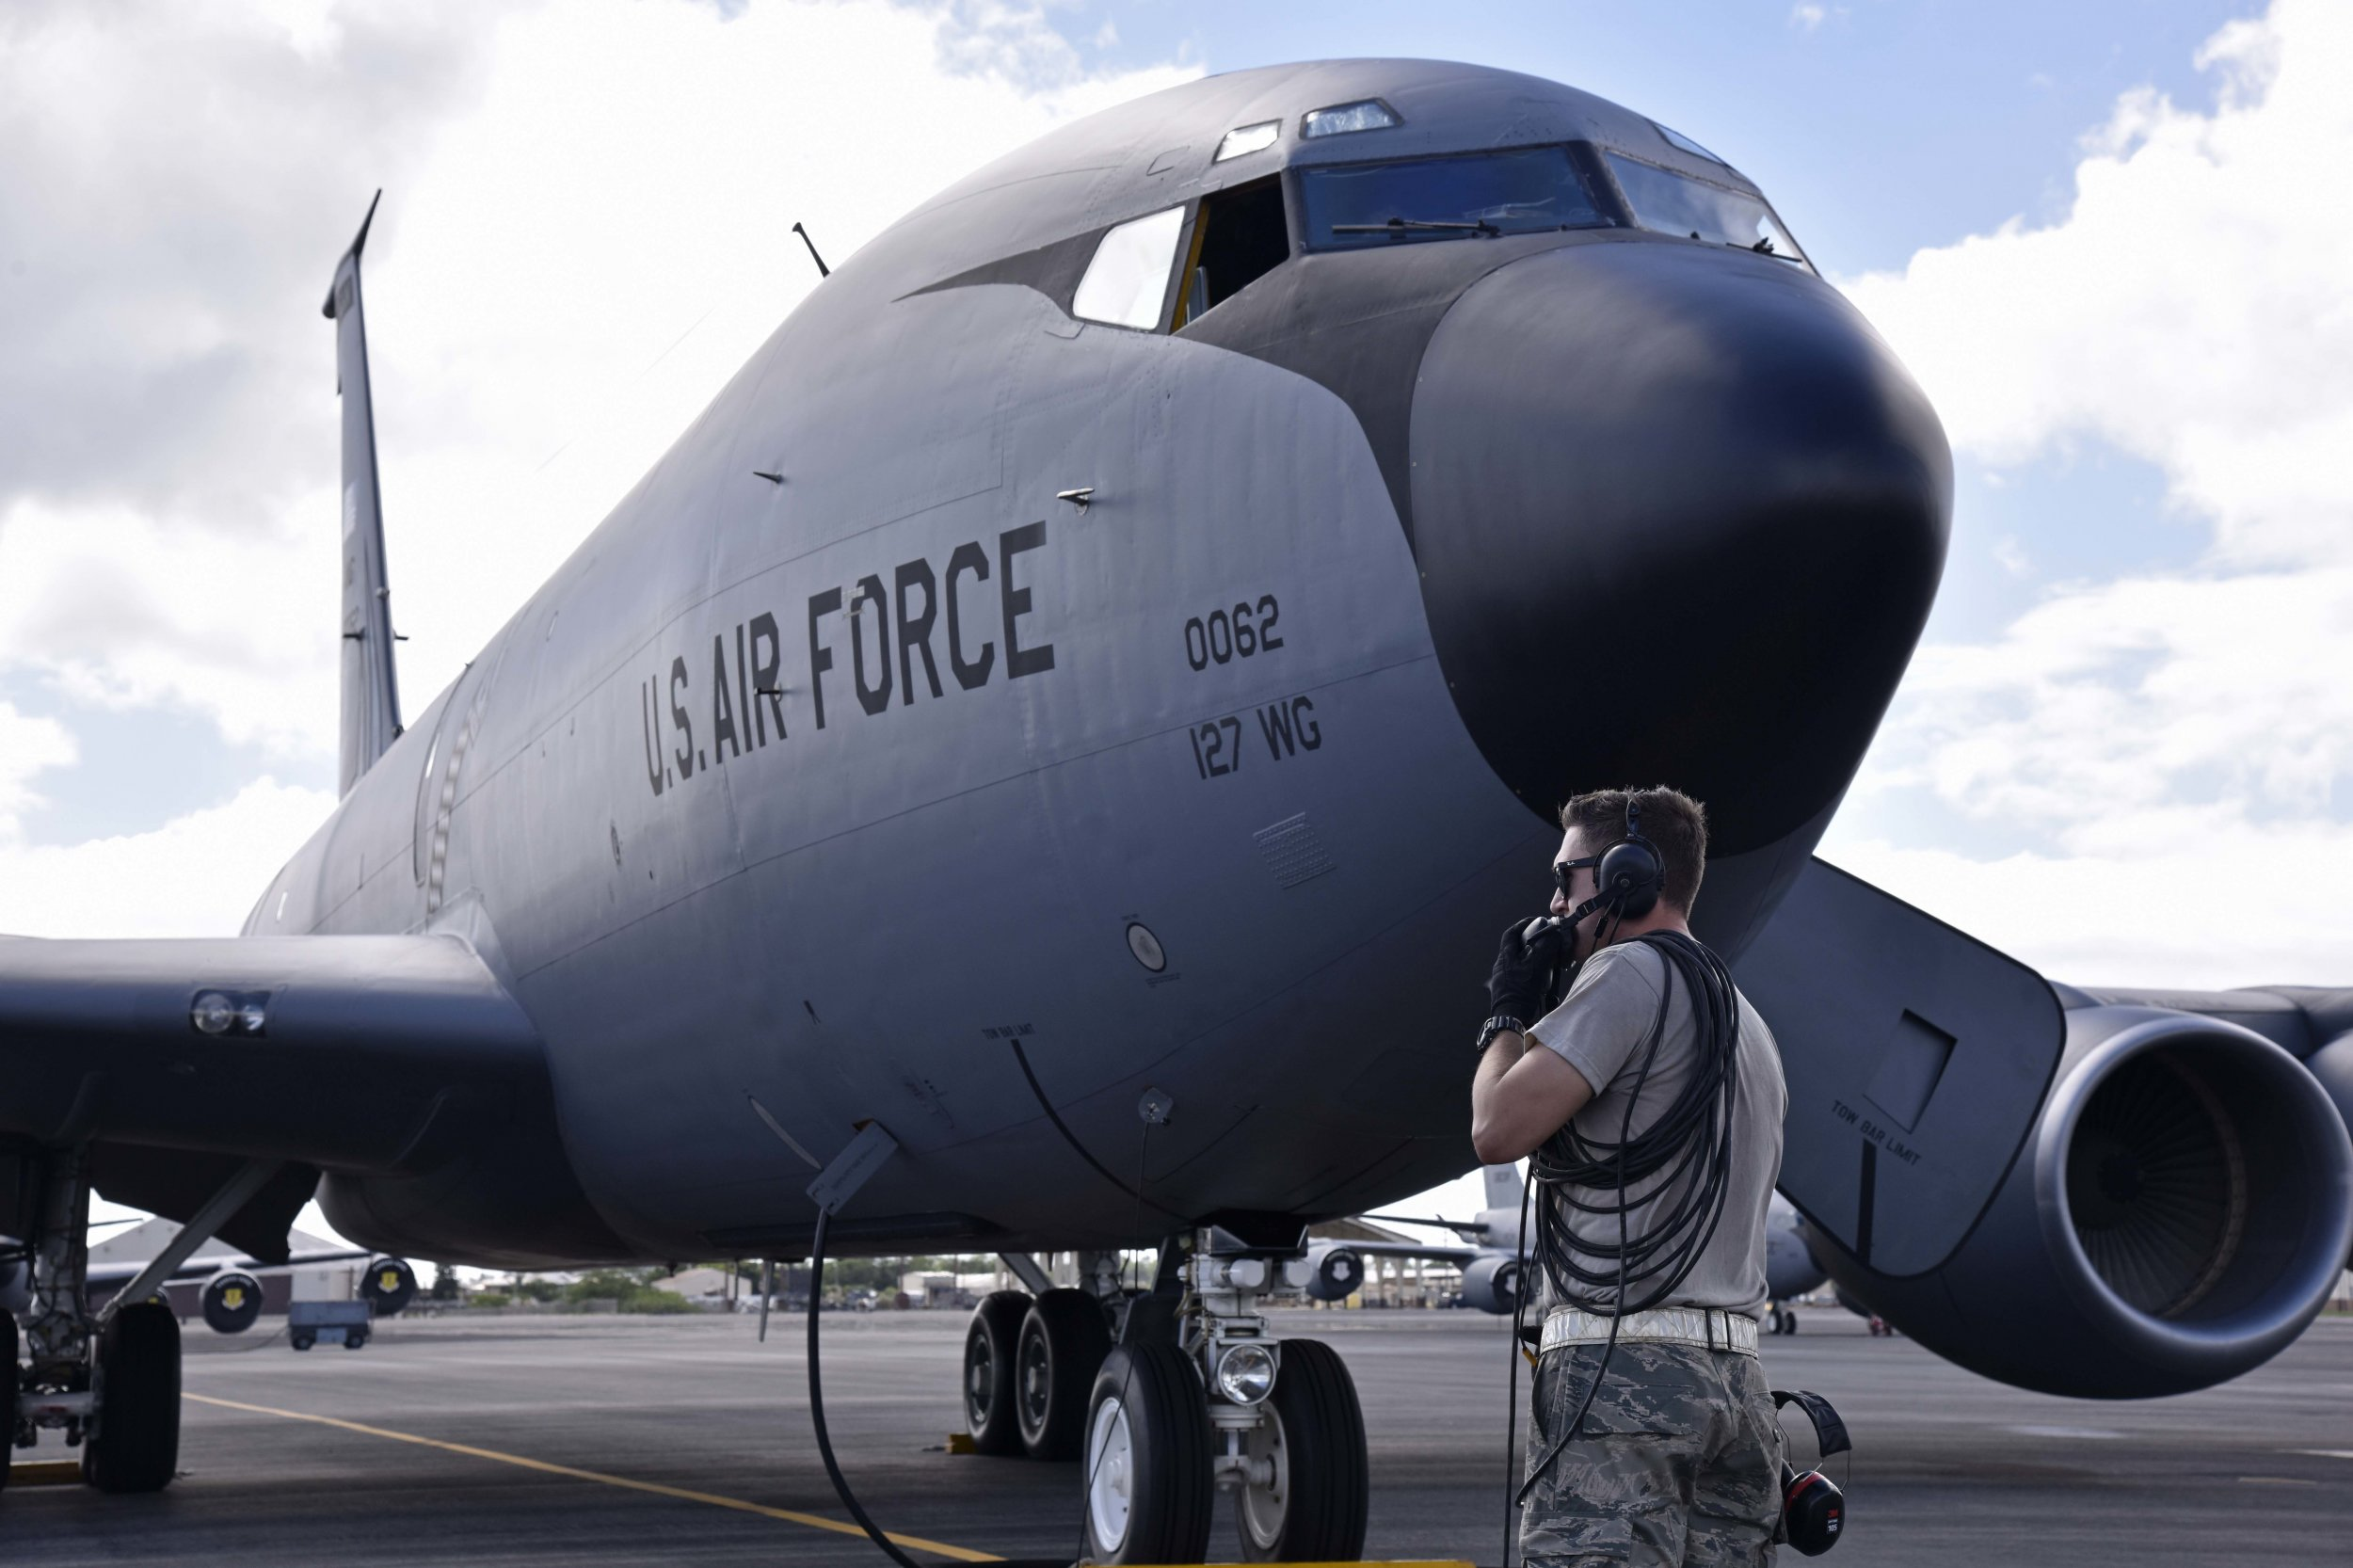 air force threat Selfridge Air National Guard Base michigan